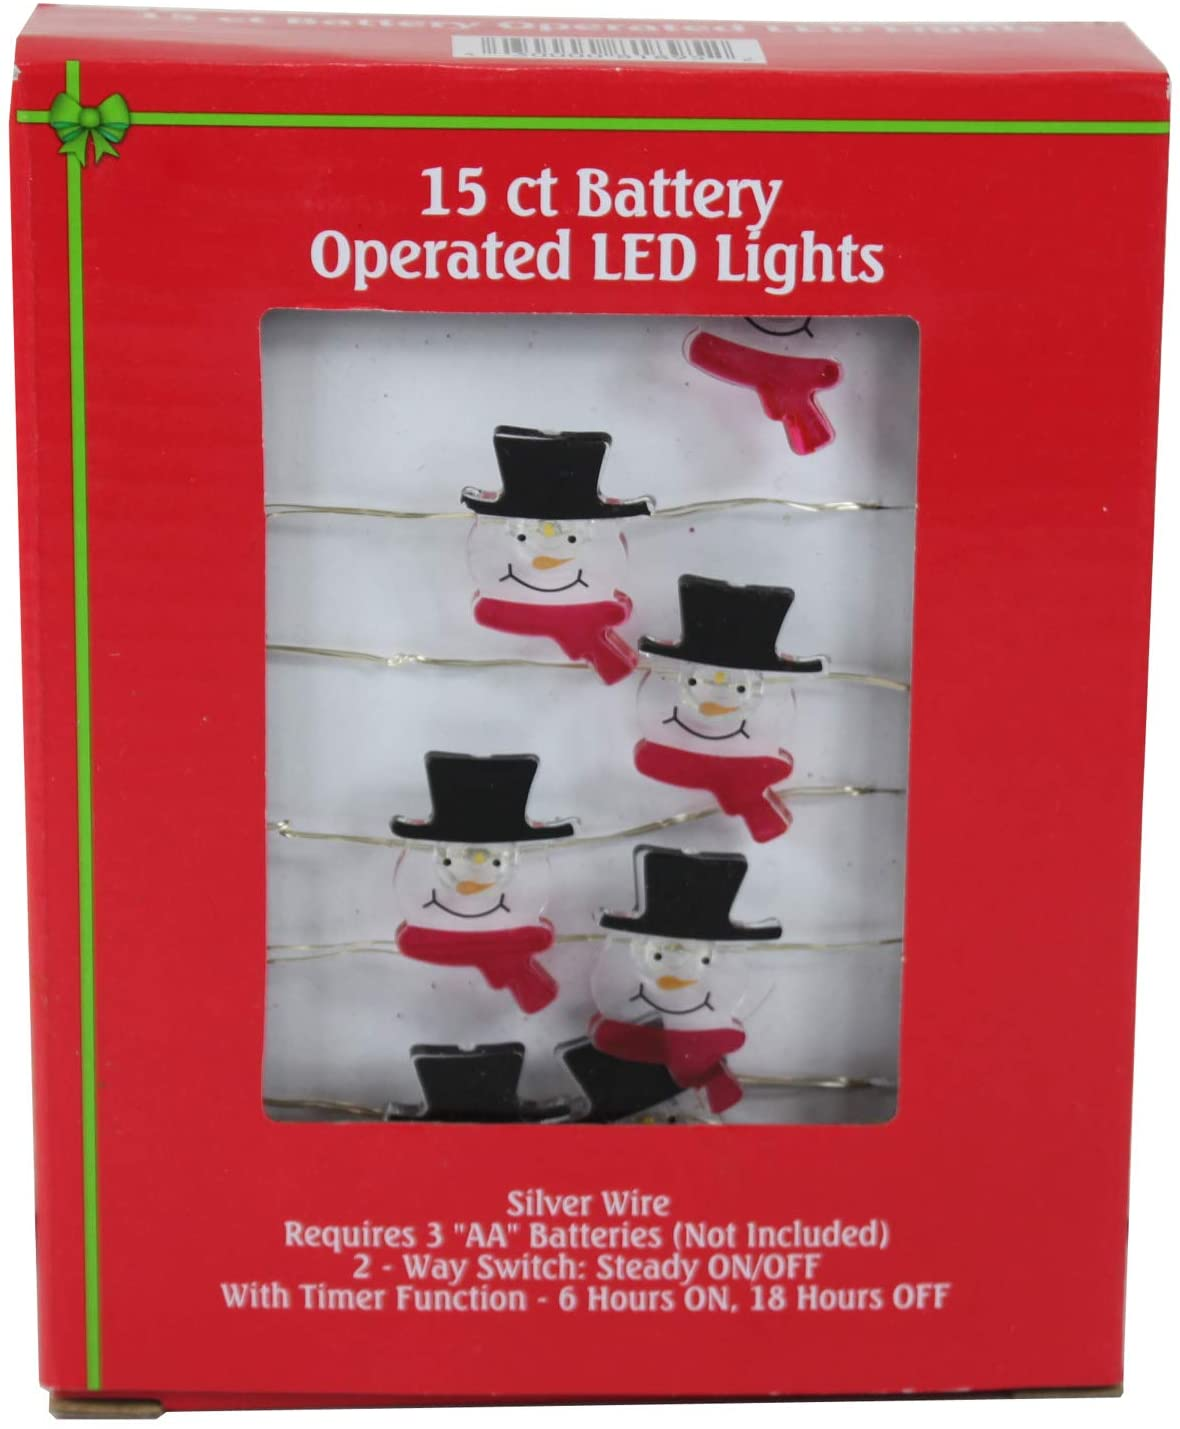 Dazzling Deals Holiday Style 15 Ct Battery Operated LED Lights